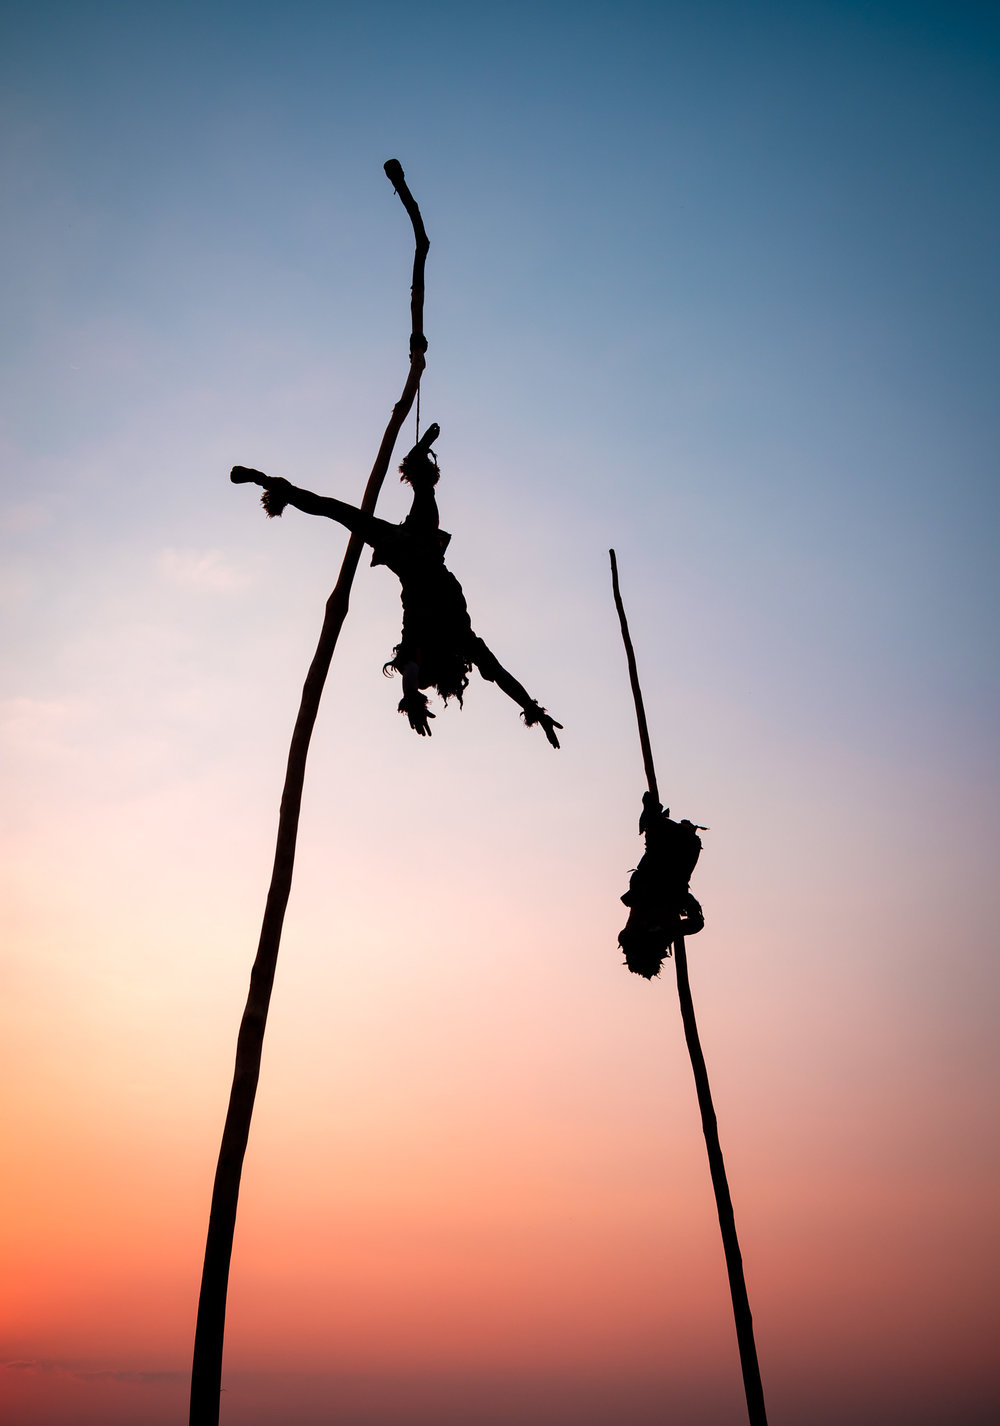 As the sun set you can see the silhouette of the thin rope securing the dancers.